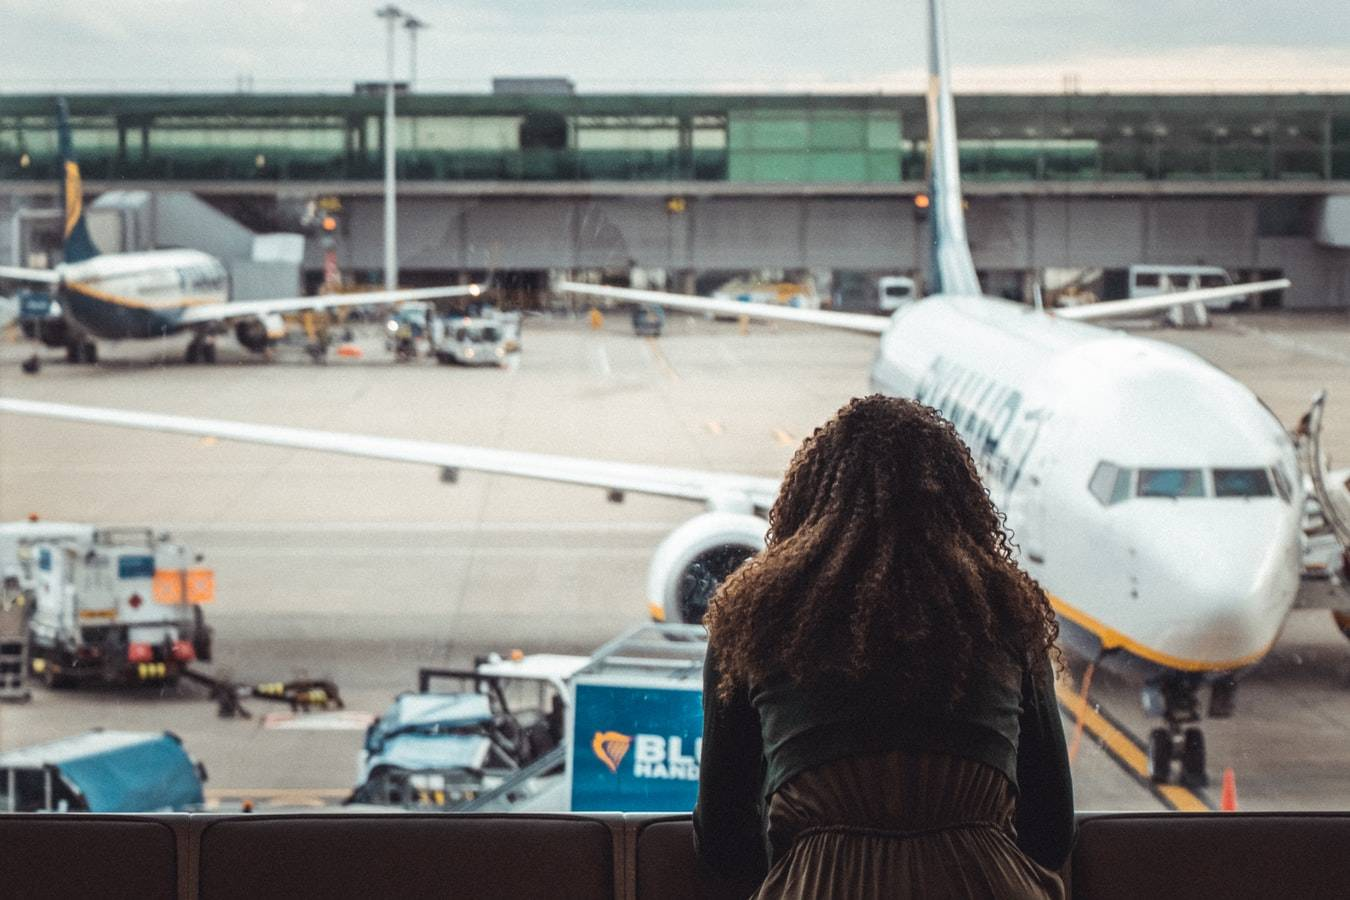 Women looking out an airport window